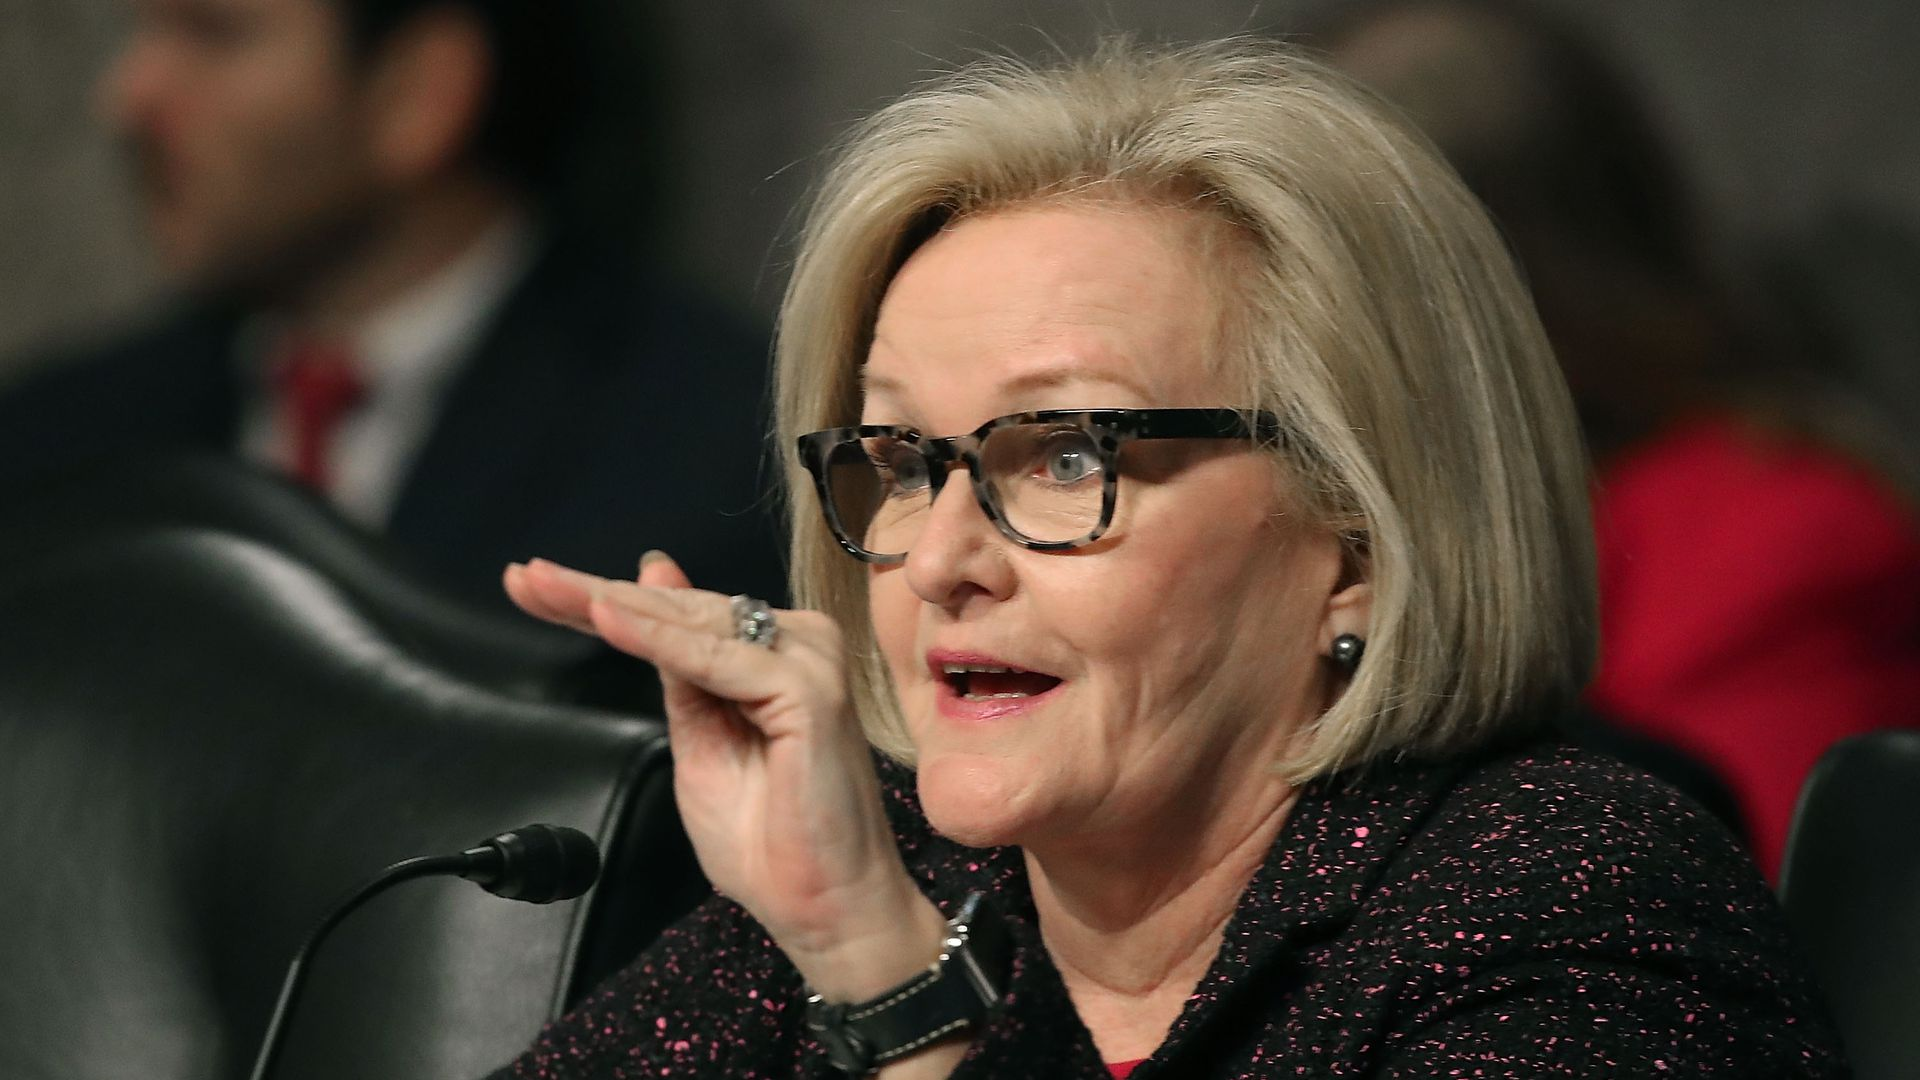 Claire McCaskill speaks at a Senate hearing.